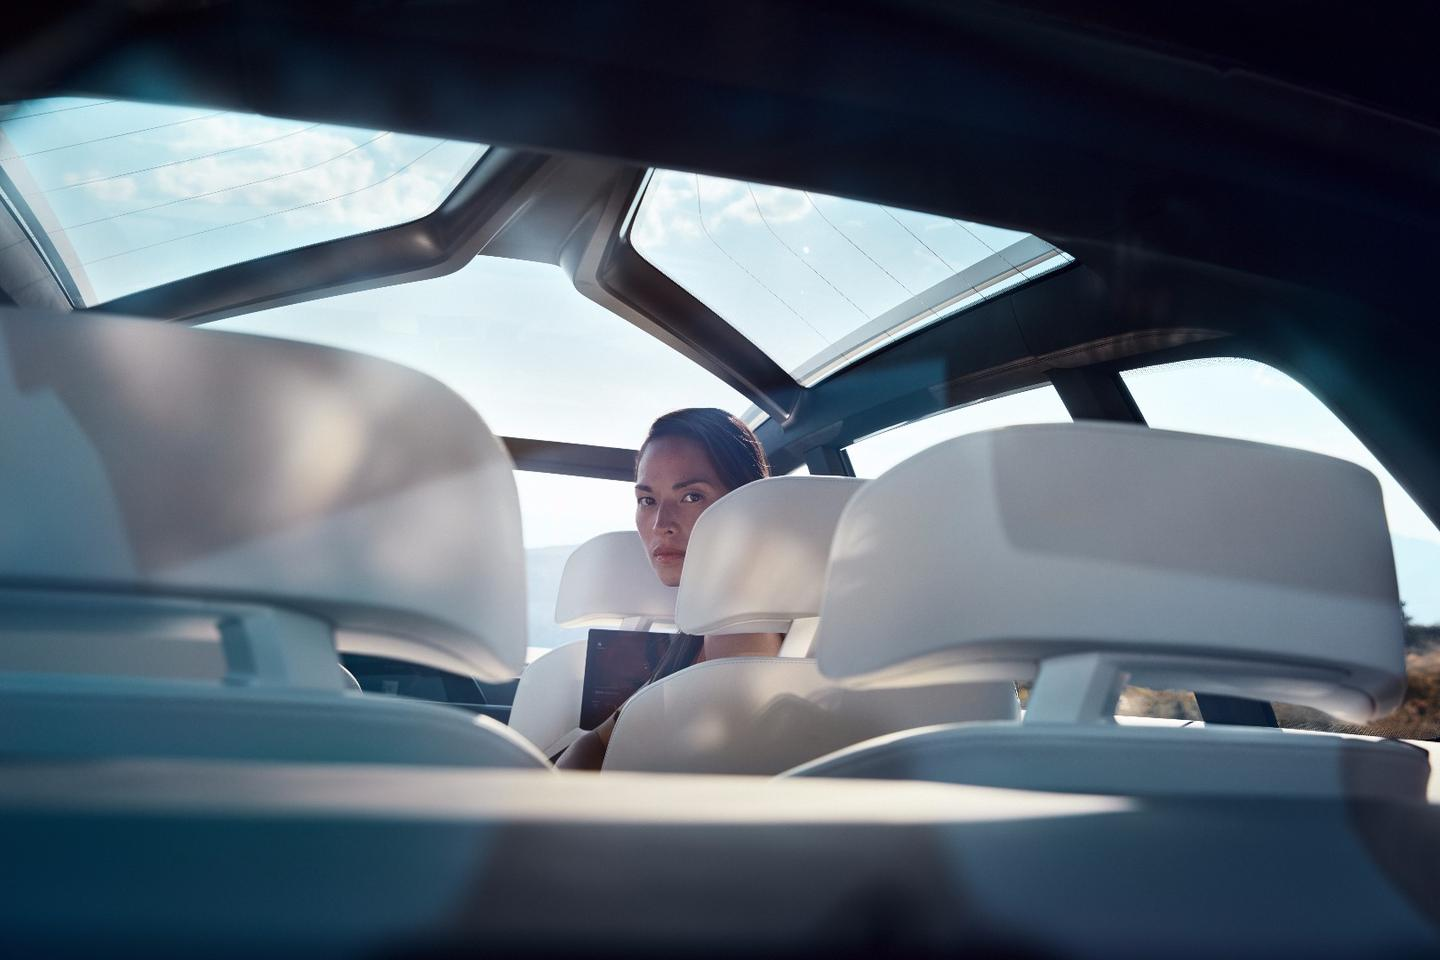 The giant panoramic roof on the X7 iPerformance is designed to make the cabin feel light and airy